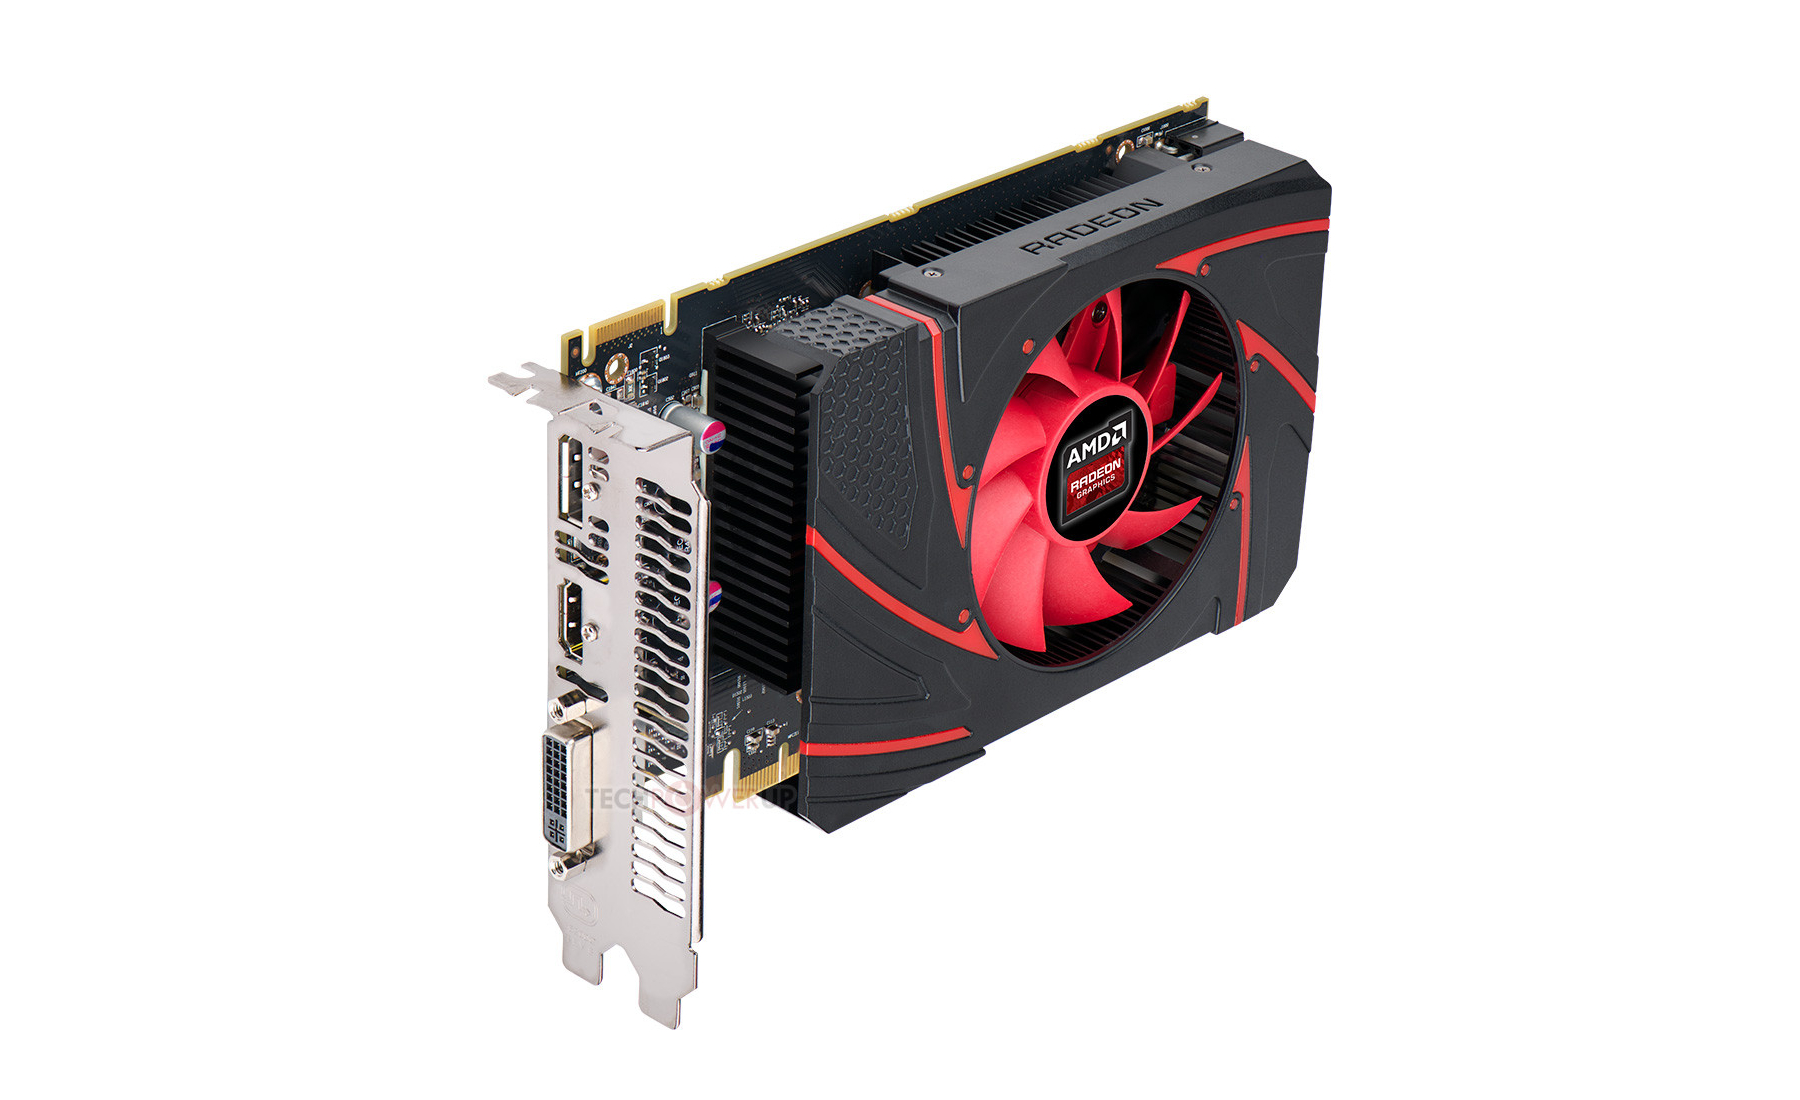 AMD Radeon R7 260 Low-Cost DirectX 11 Graphics Card